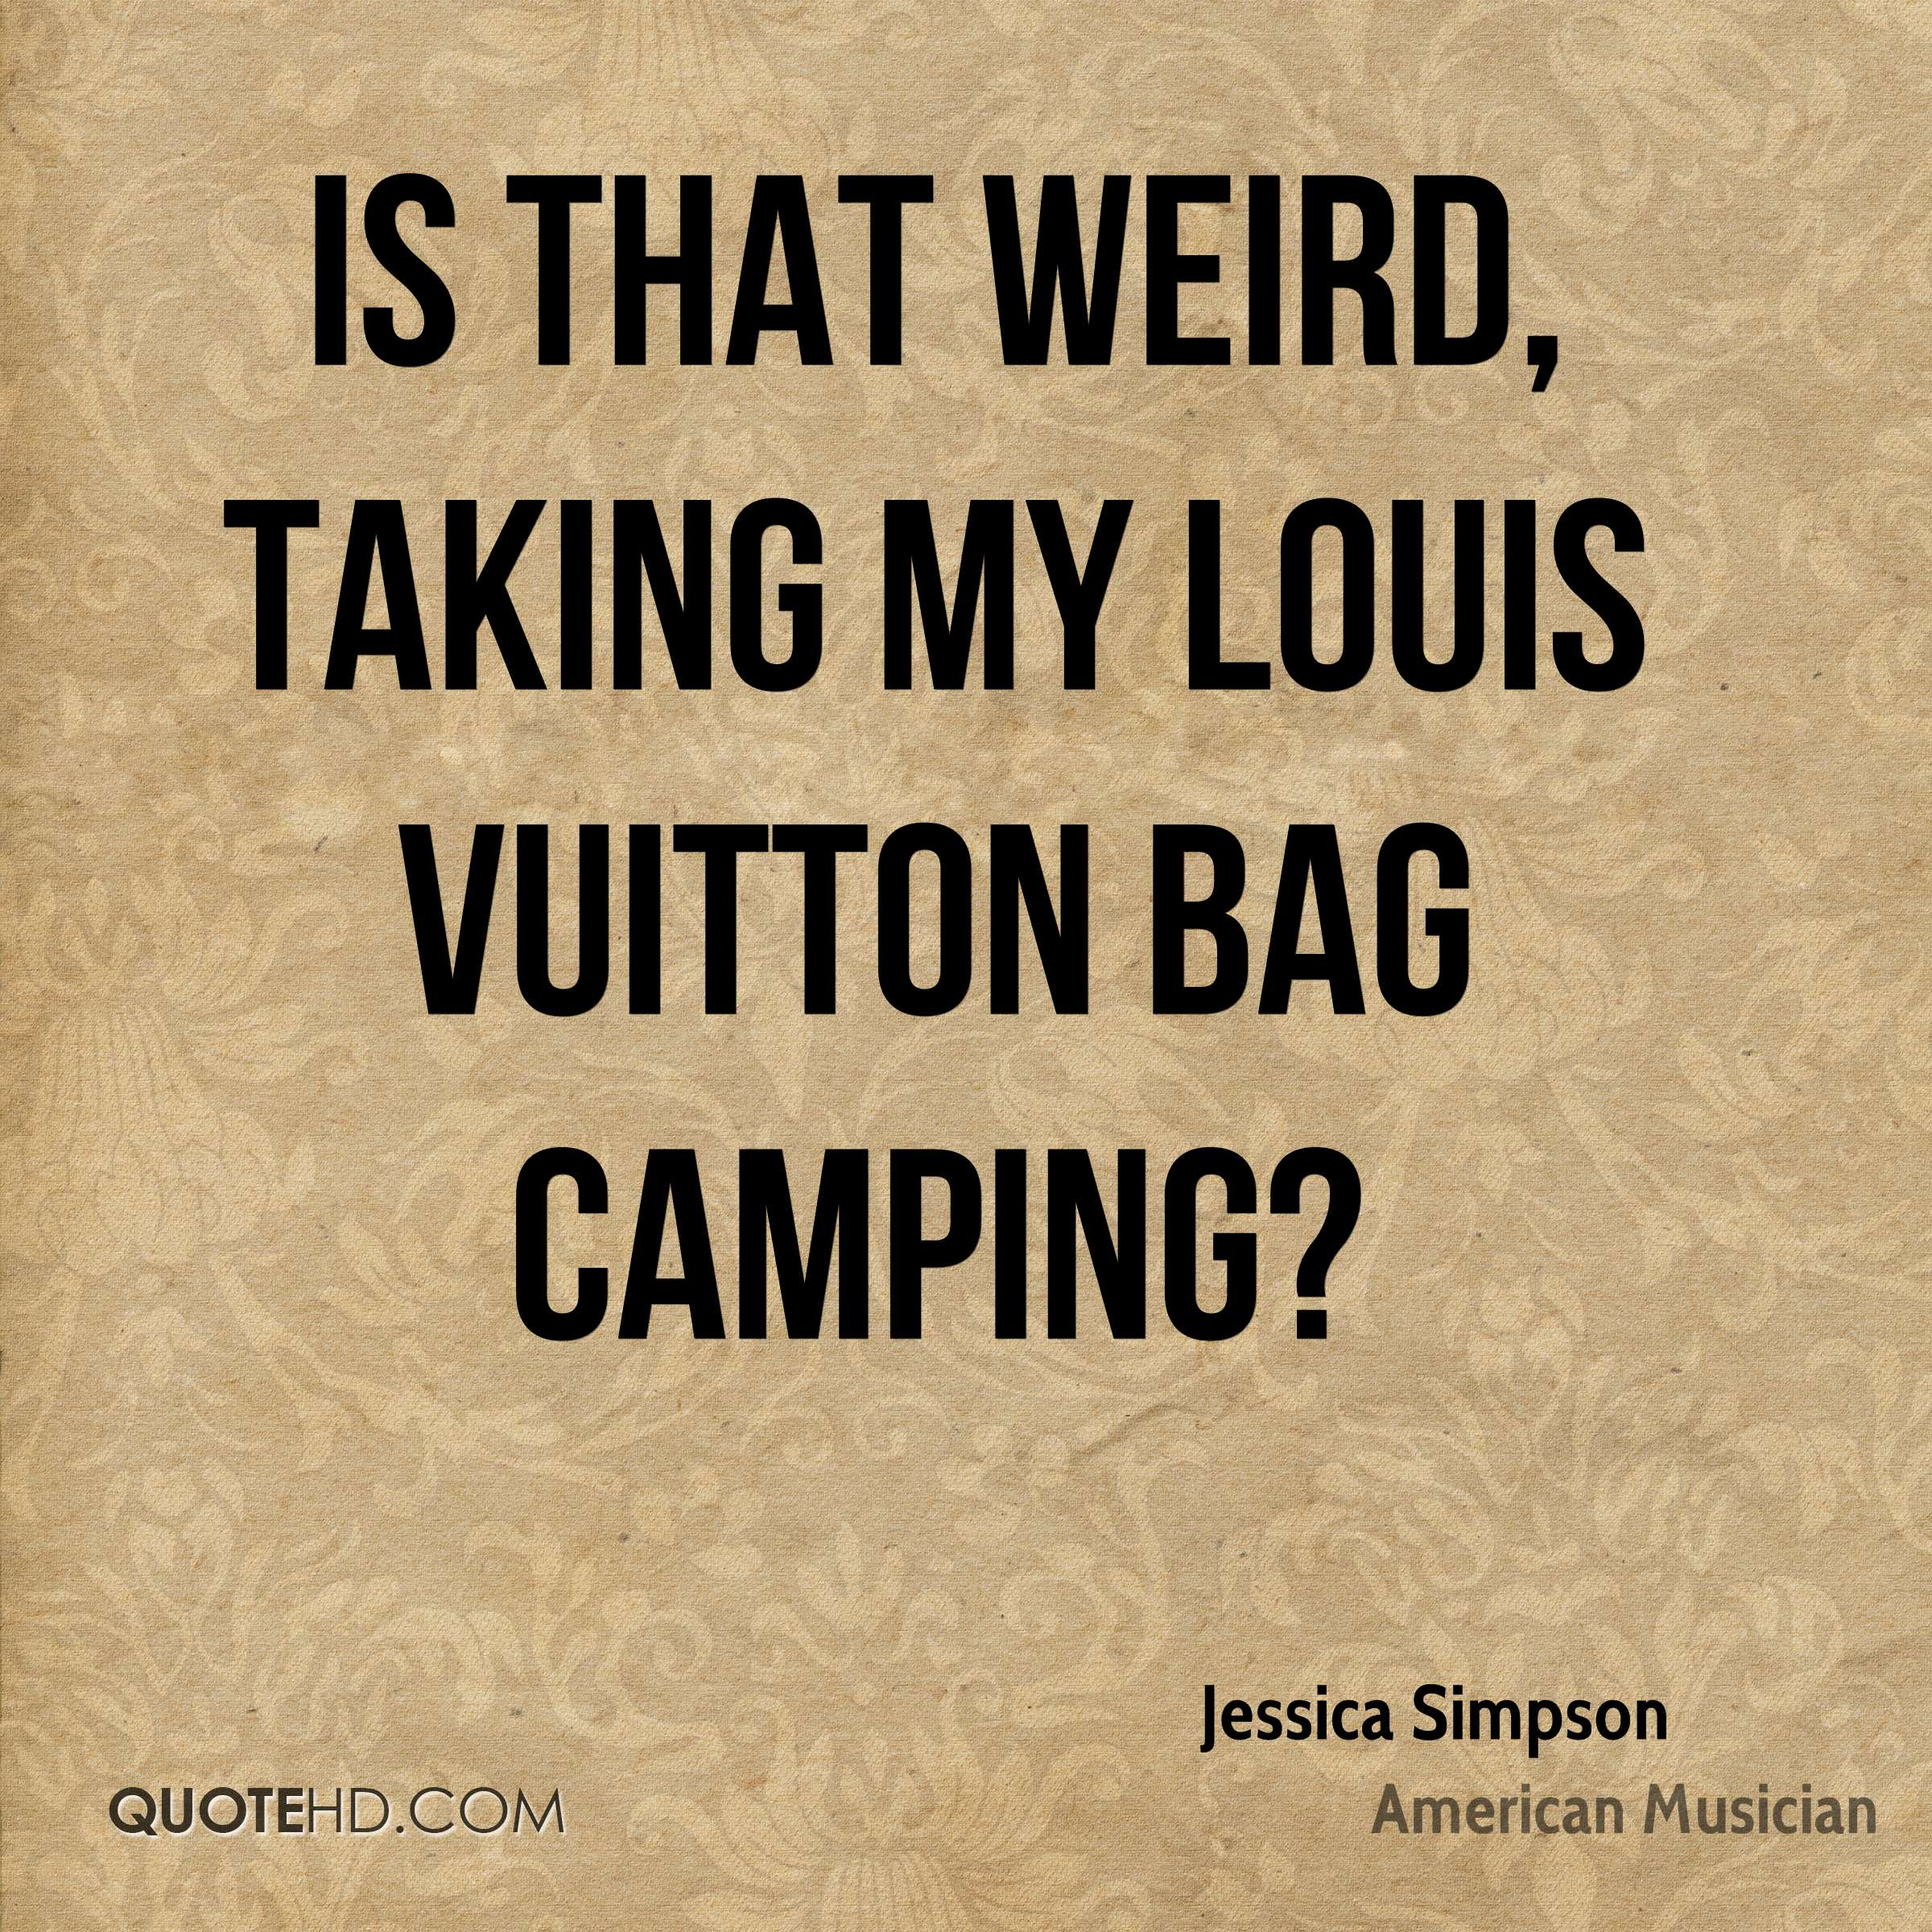 Is that weird, taking my Louis Vuitton bag camping?